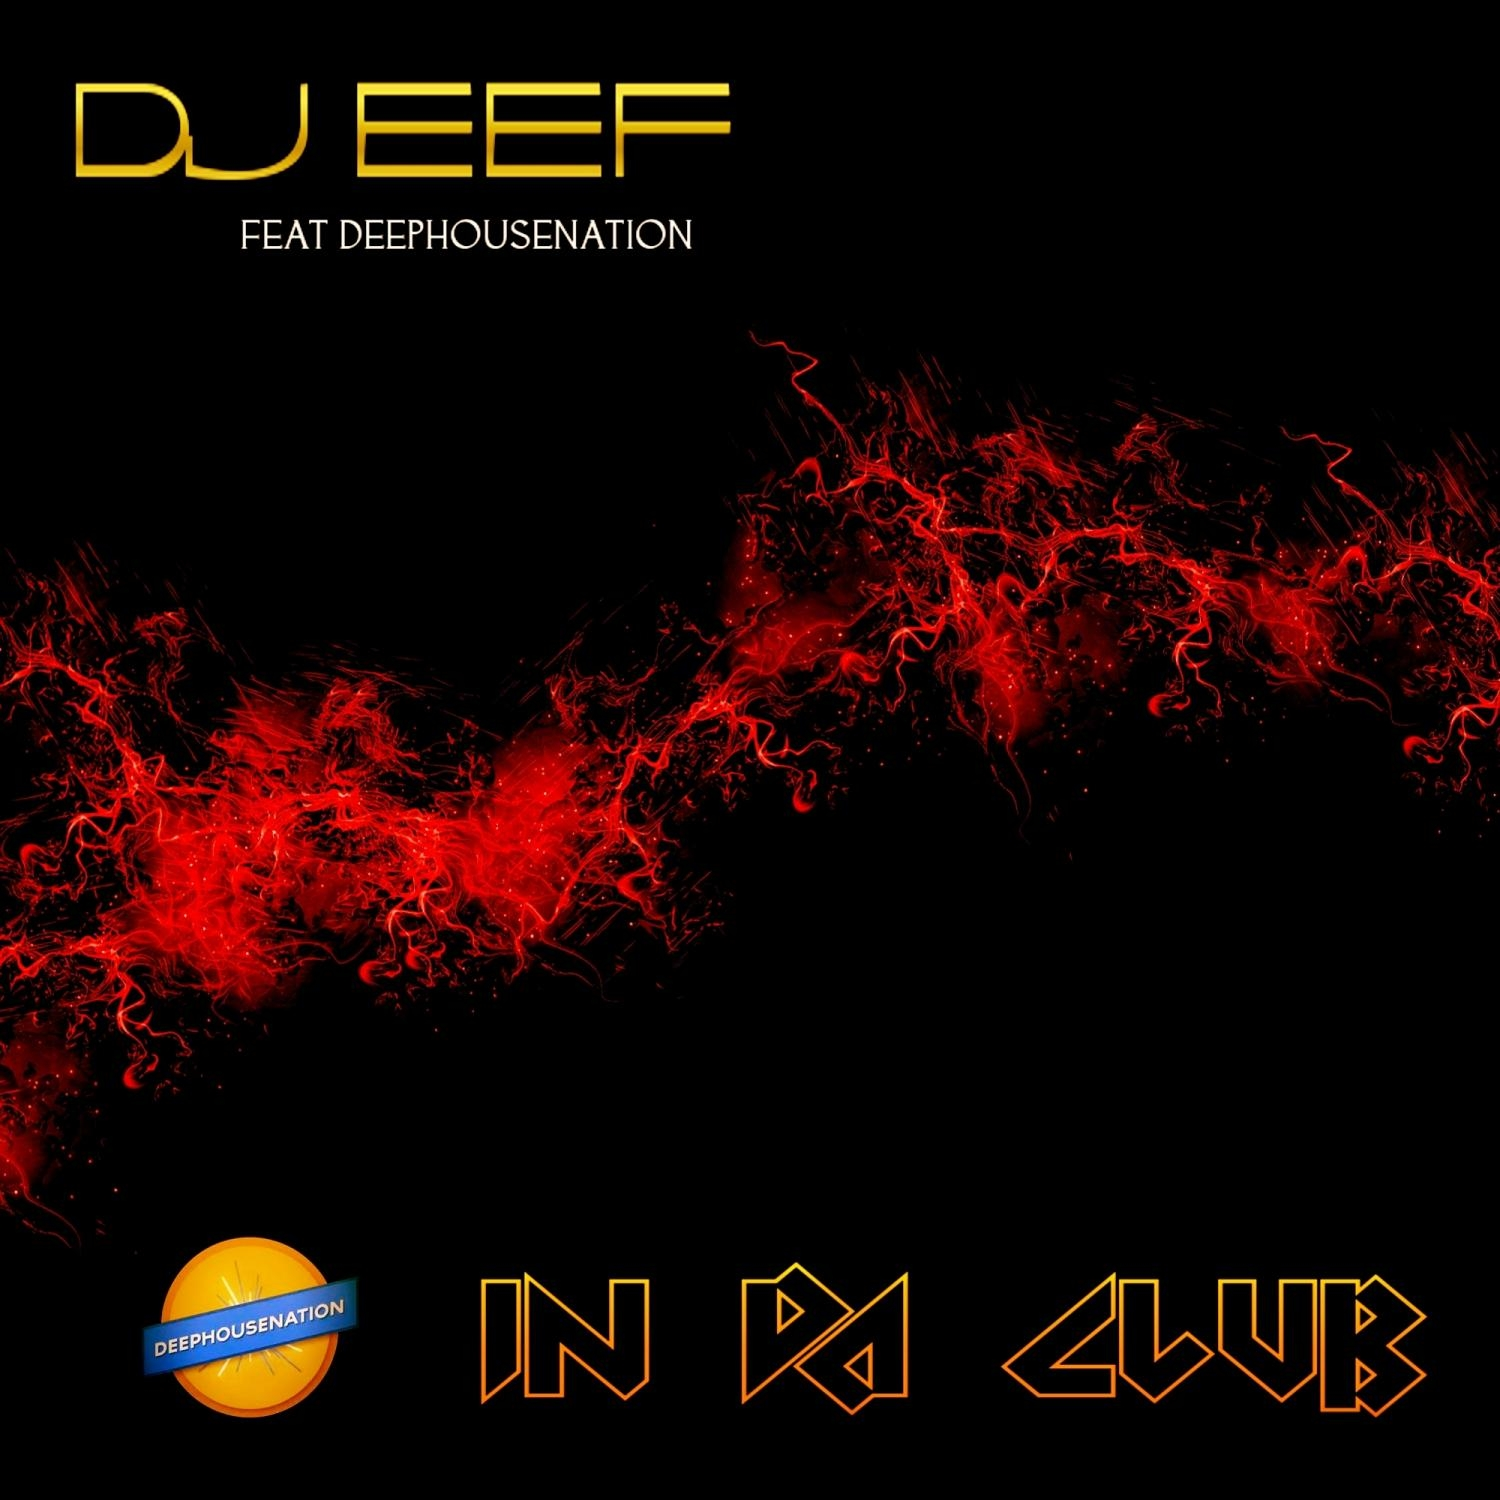 DJ EEF, Deep House Nation - In Da Club (feat. Deep House Nation) (Extended Mix)